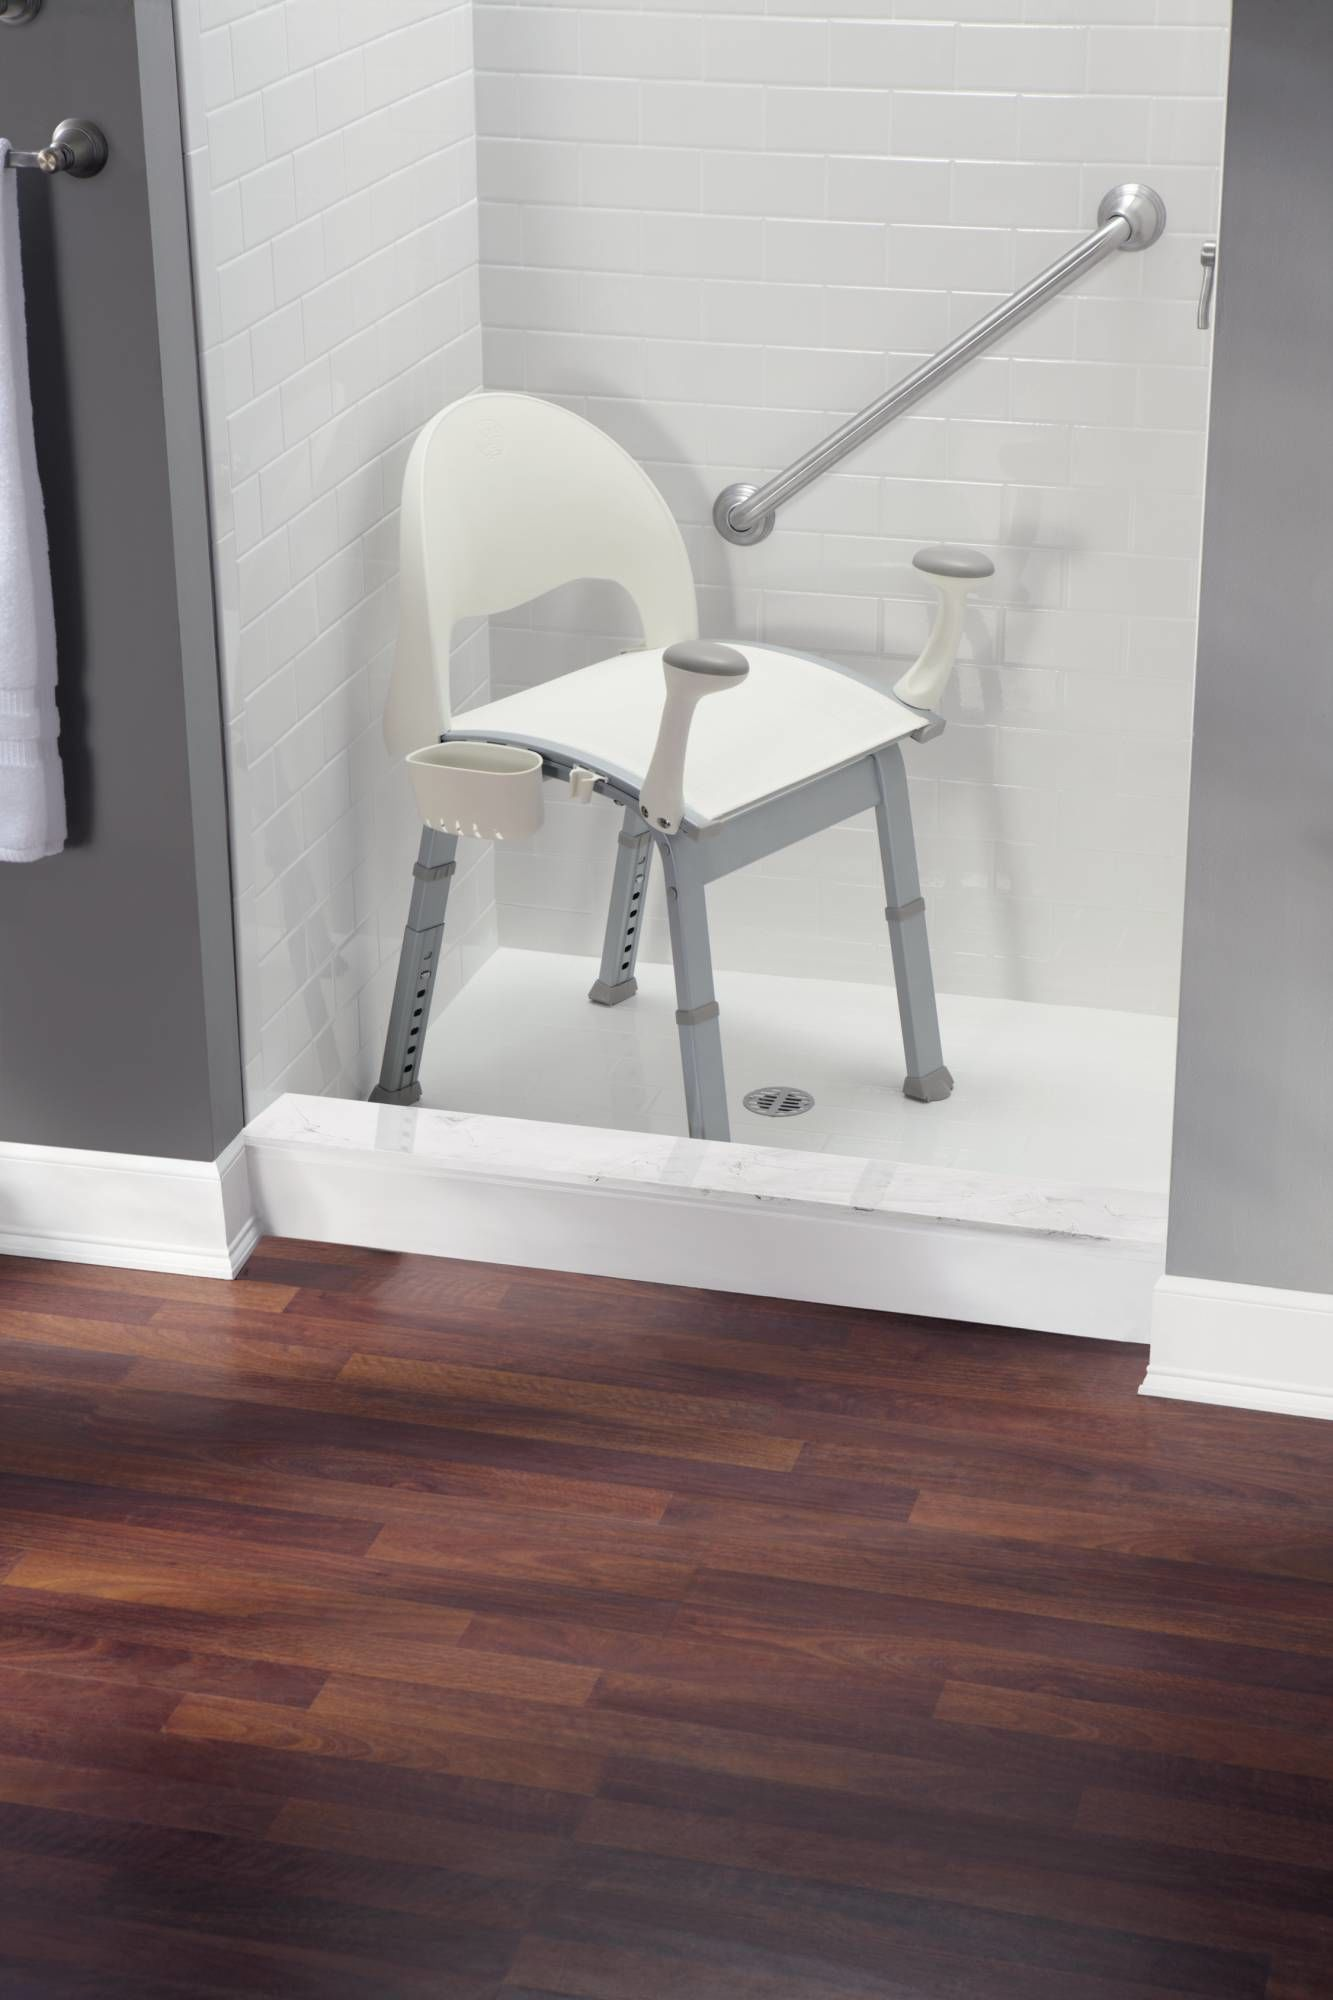 Moen CSIDN7100 Glacier Adjustable Shower Seat with Seat Back and Arm ...